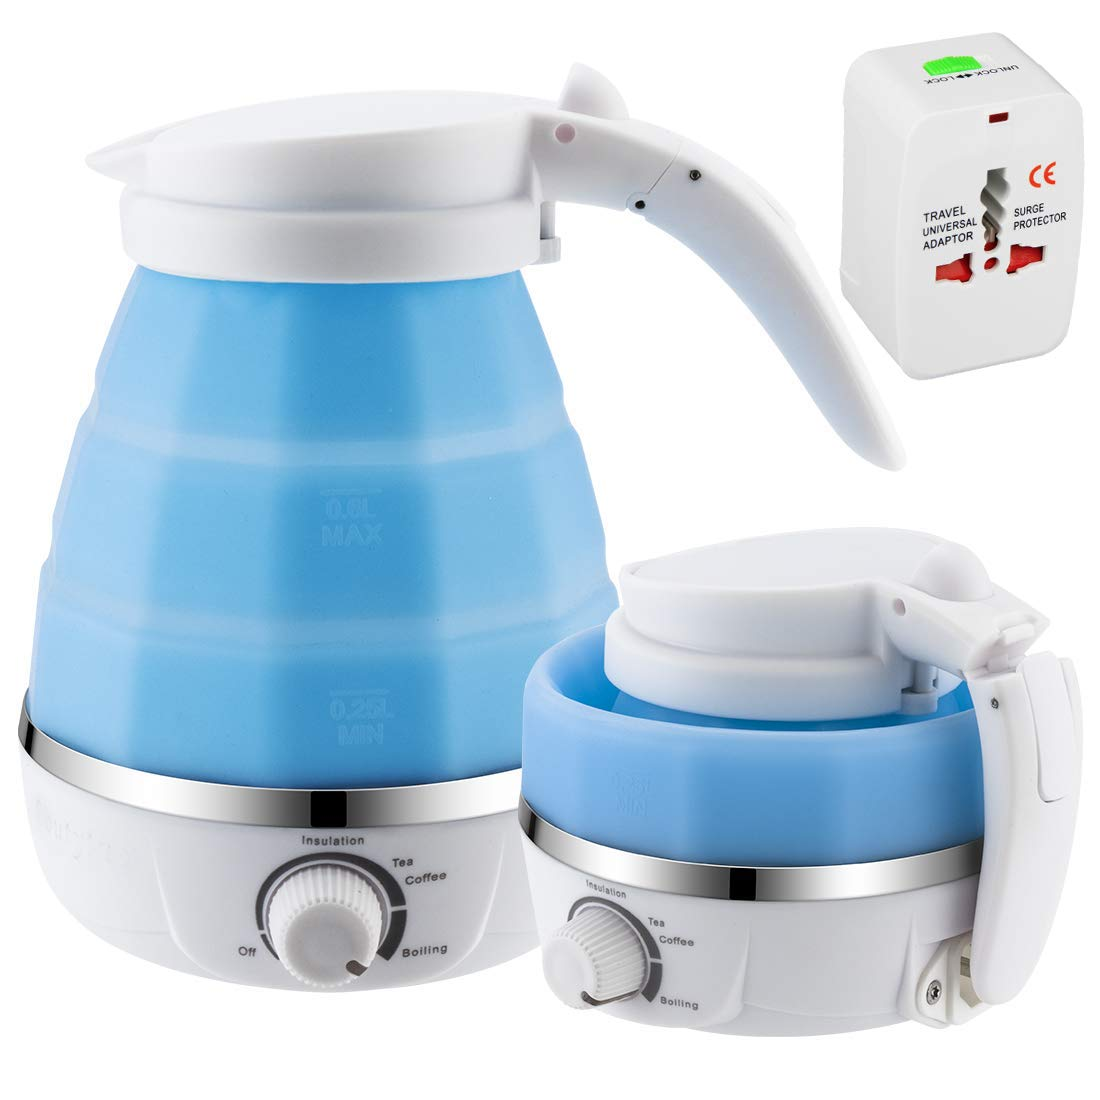 Travel Foldable Electric Kettle for All Country w Dual Voltage and Rapid Boil, Collapsible Design, Food Grade Silicone, 0.6L, 100-120V 220-240V